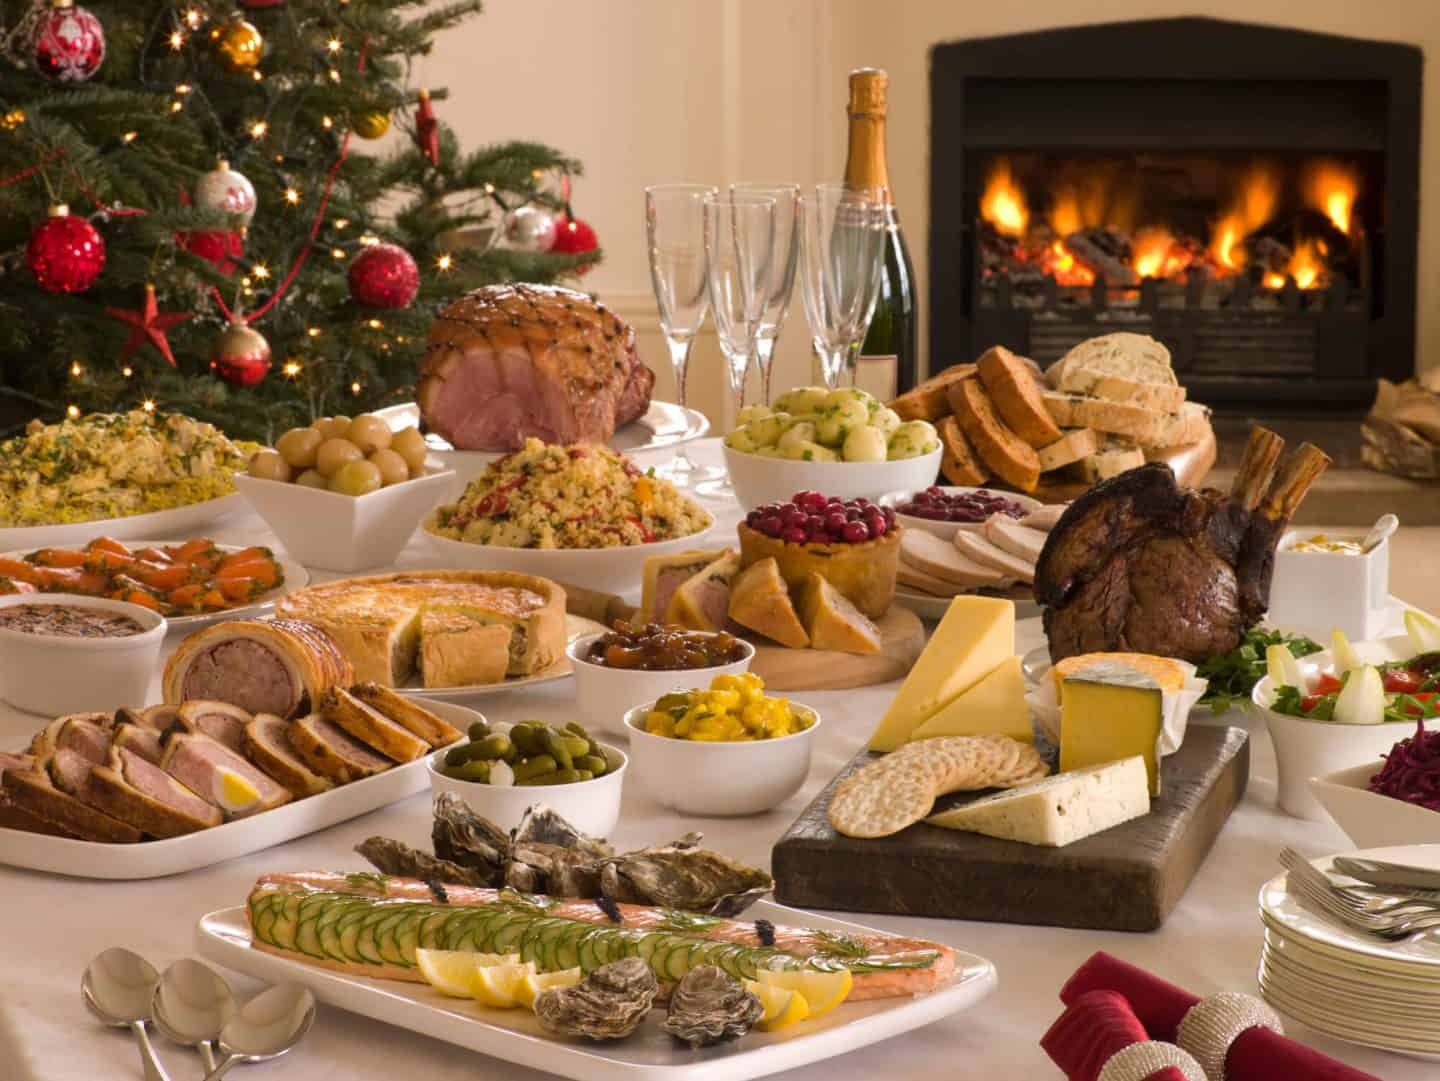 Three Tips that Will Help Make the Christmas Season More Affordable This Year